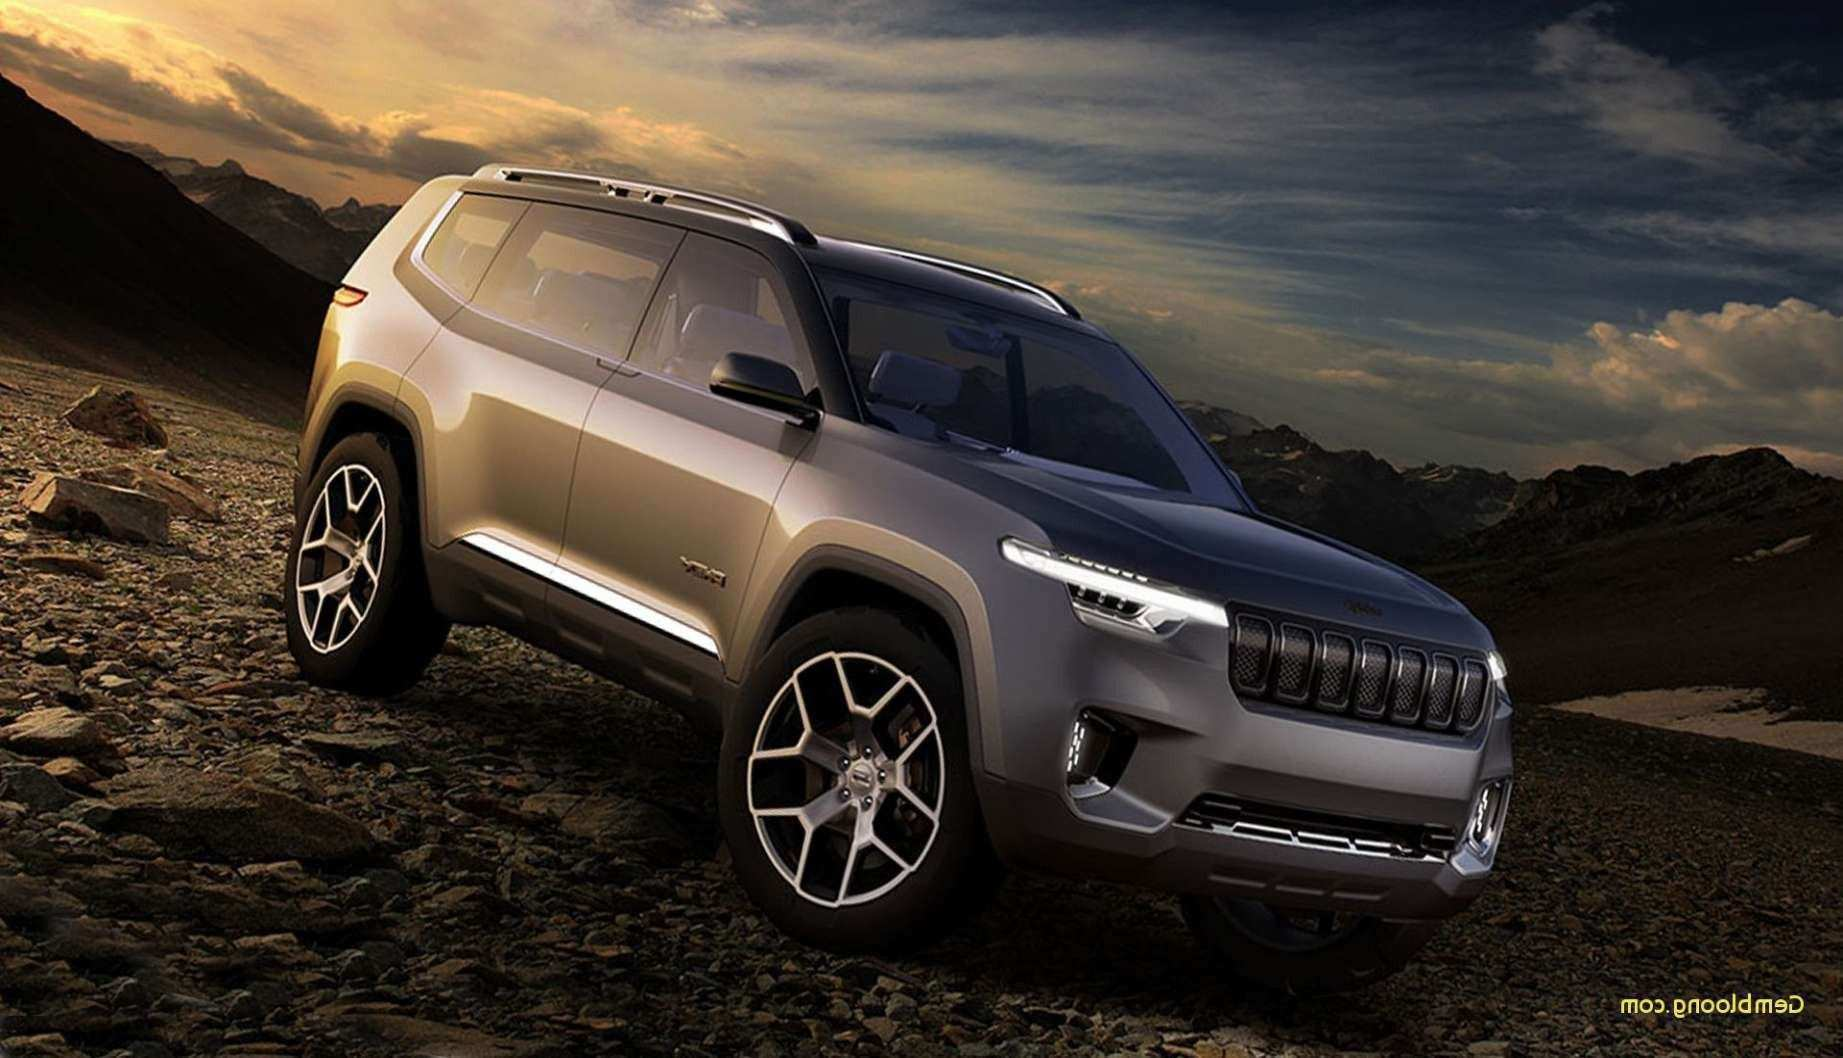 57 All New 2020 Jeep Grand Cherokee 2020 Exterior and Interior with 2020 Jeep Grand Cherokee 2020